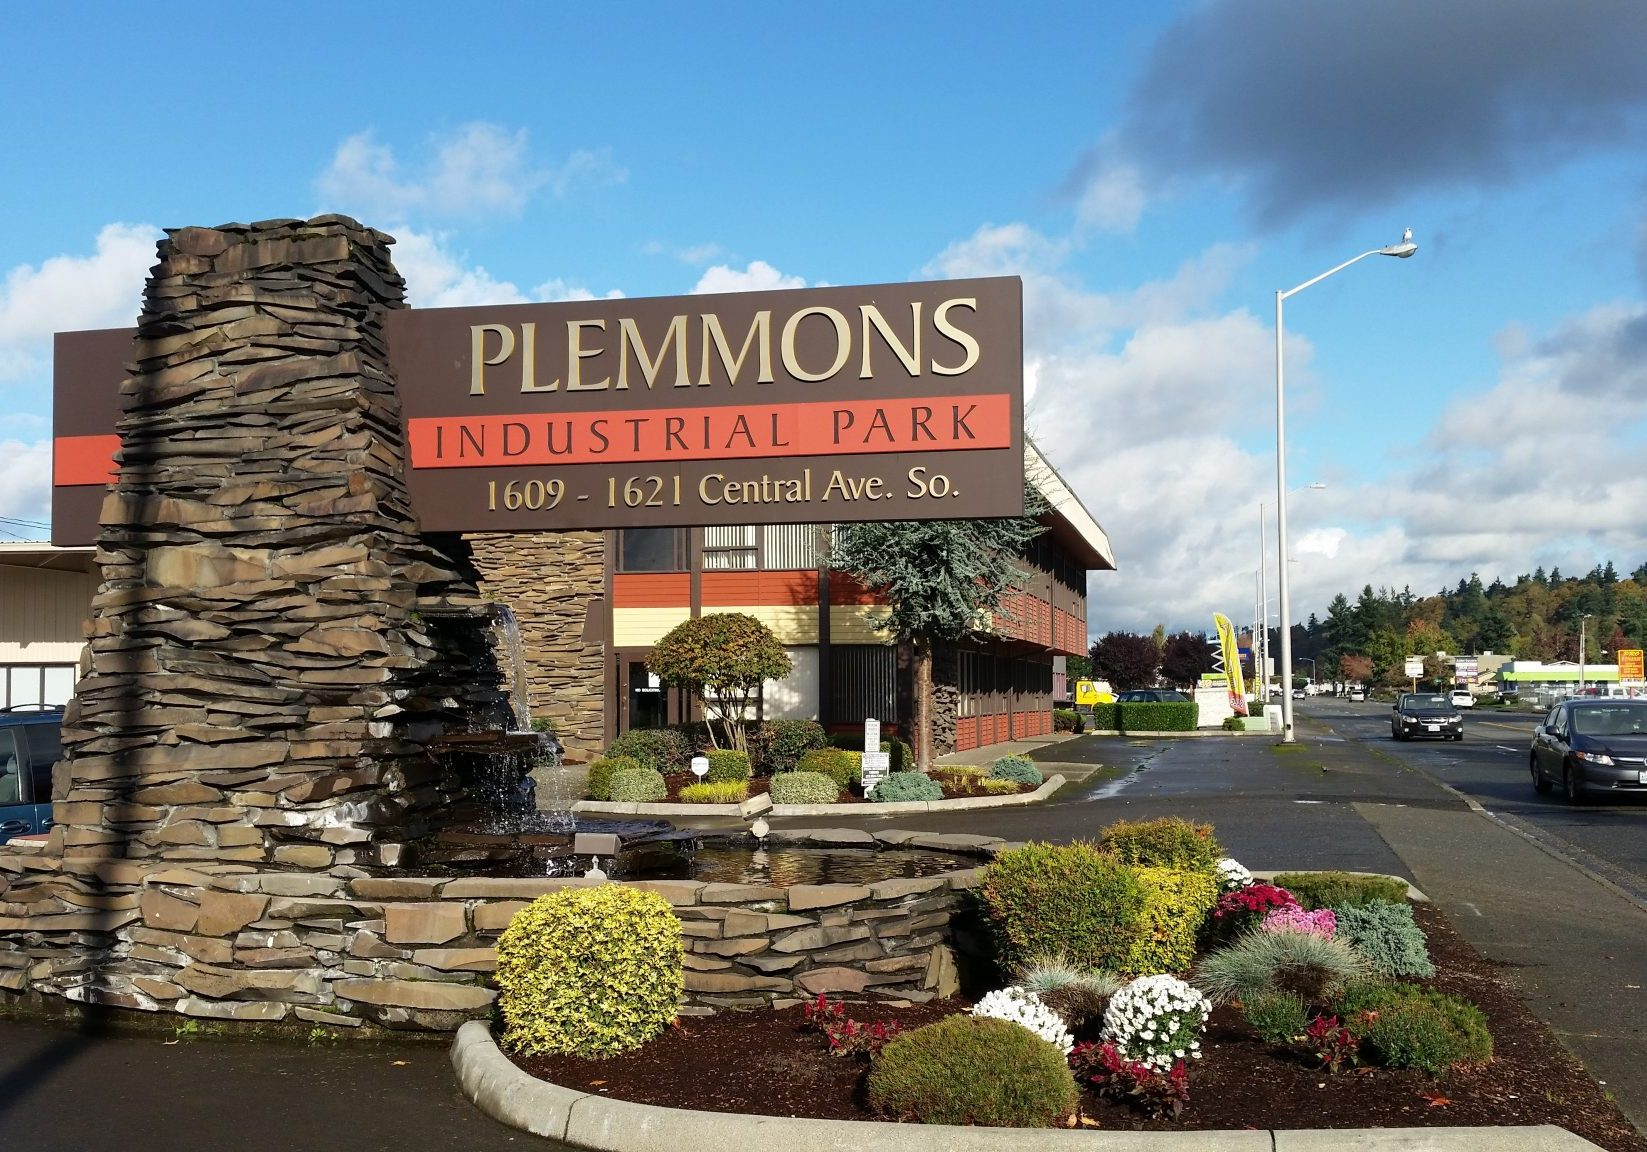 Plemmons Industrial Park